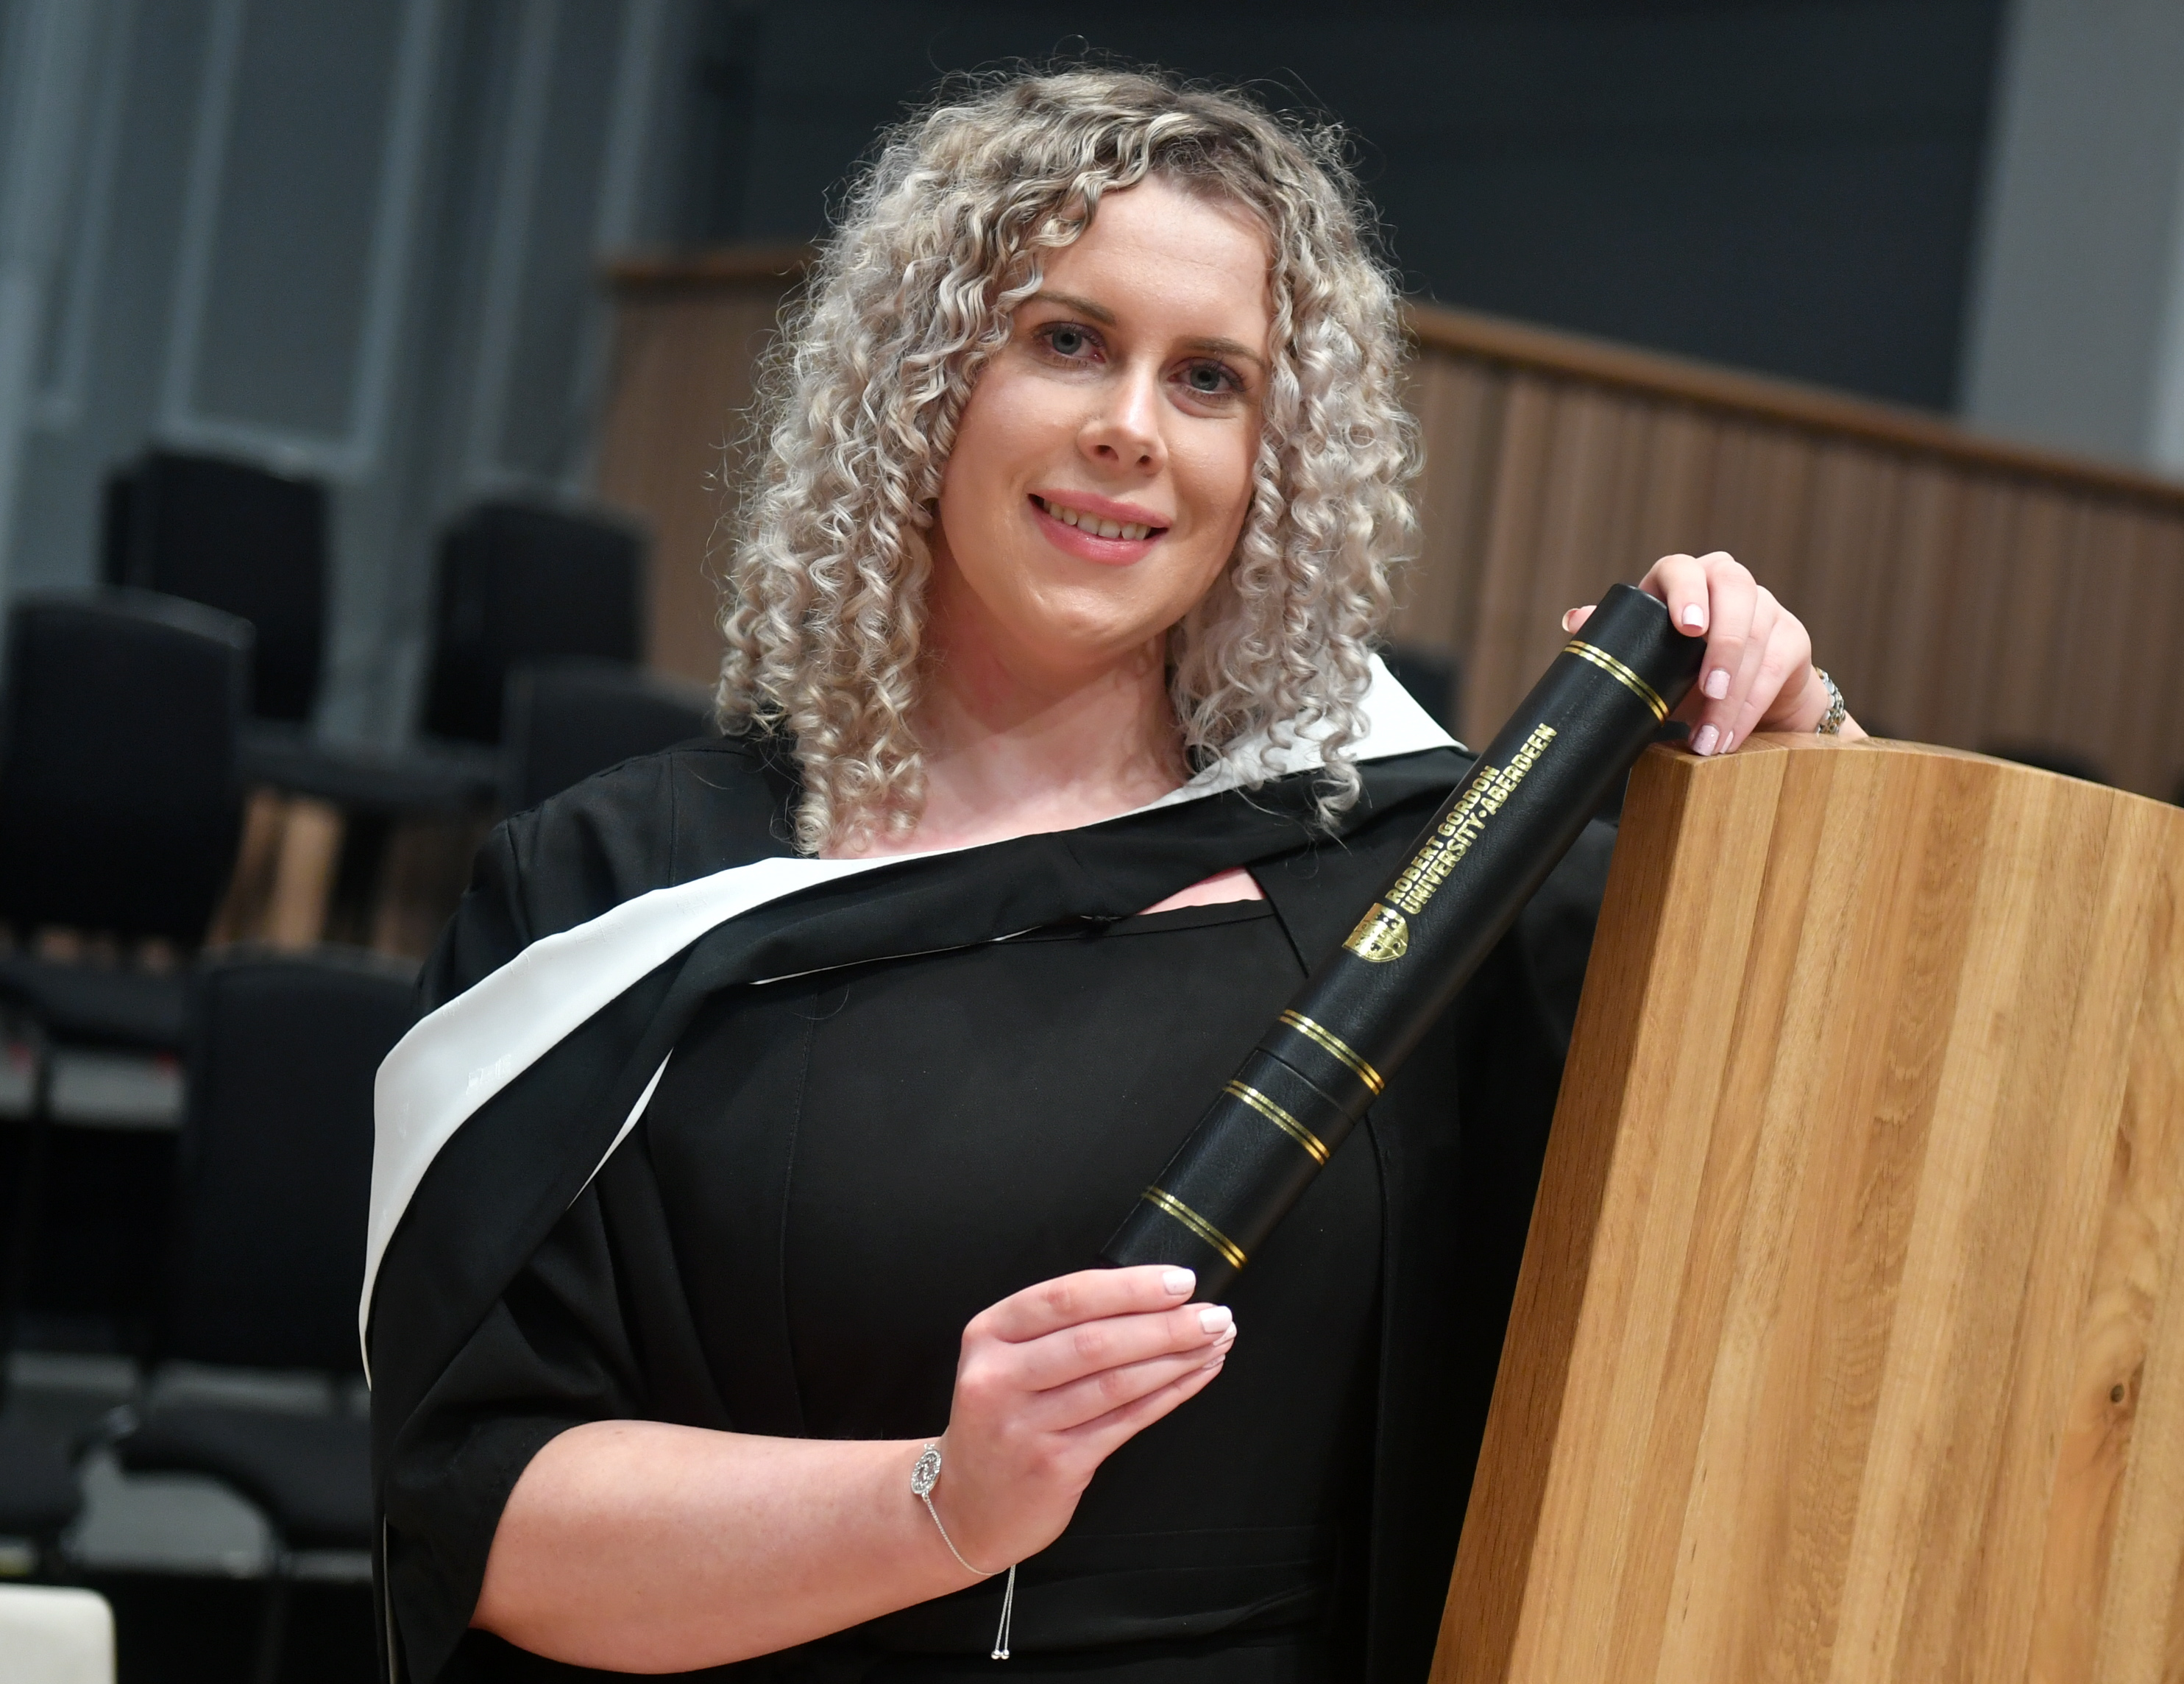 Annie Theresa MacDonald. Picture taken by Chris Sumner